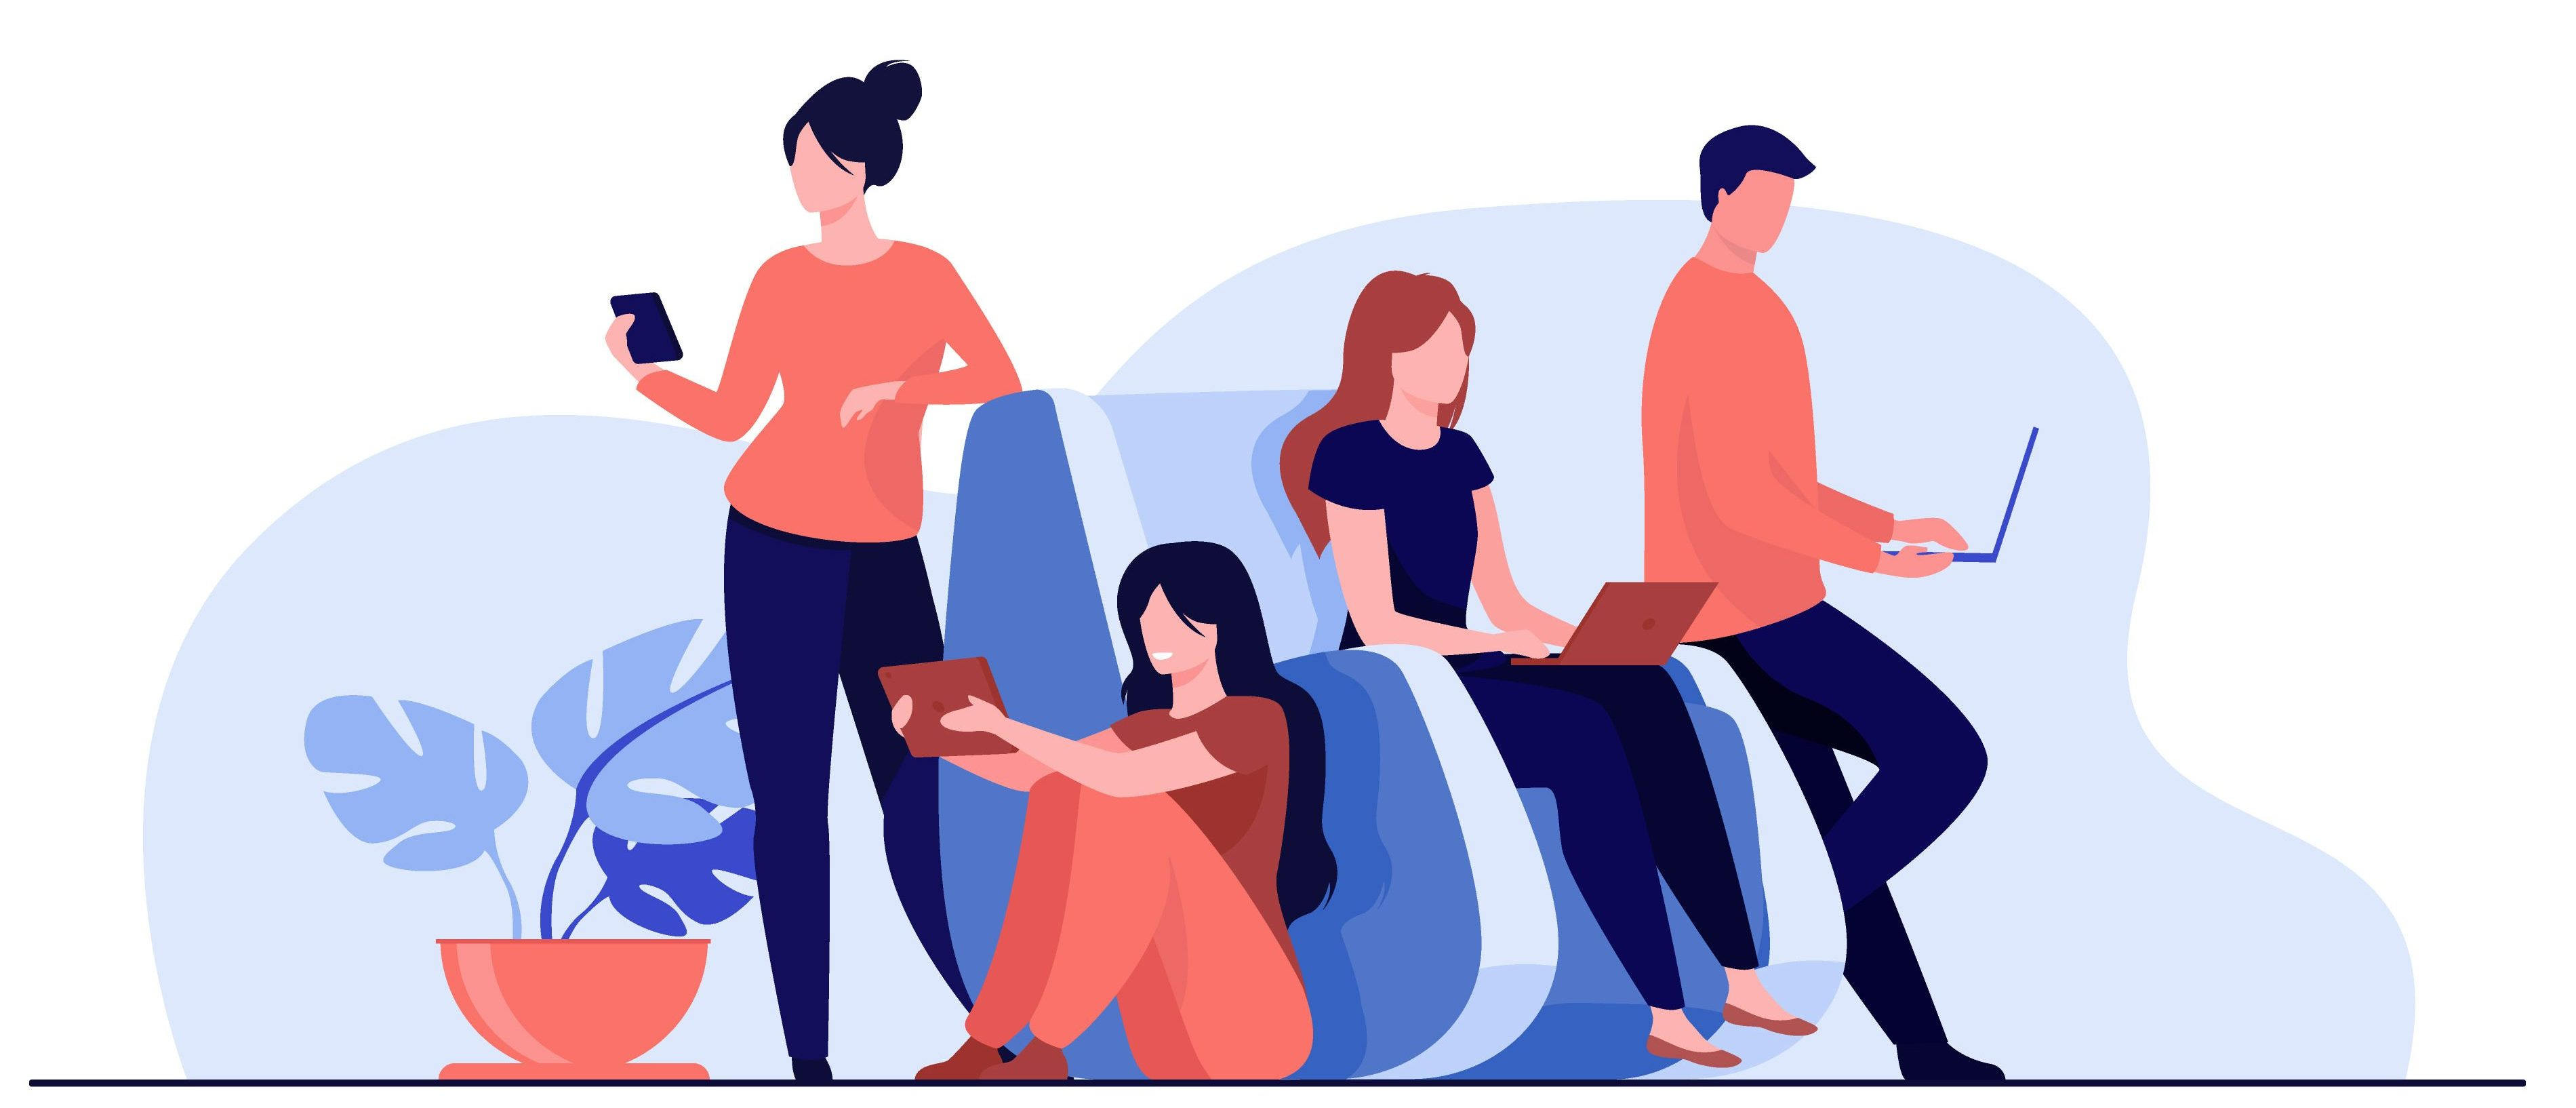 illustration of online readers with devices